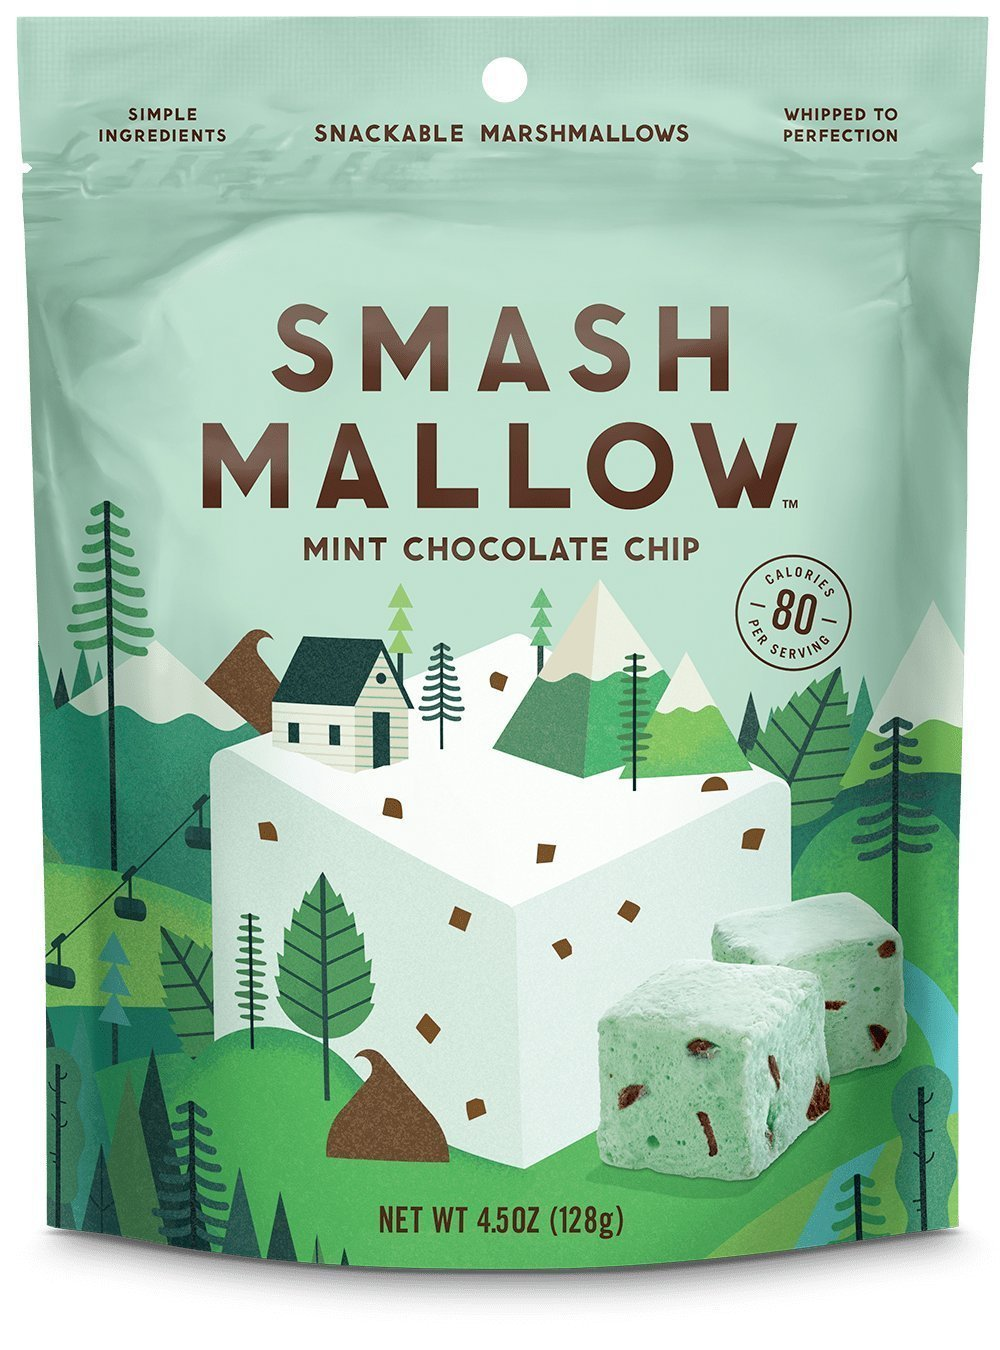 Smash Mallow Snackable Marshmallows Mint Chocolate Chip 4.5 oz (Pack of 4) by Smash Mallow